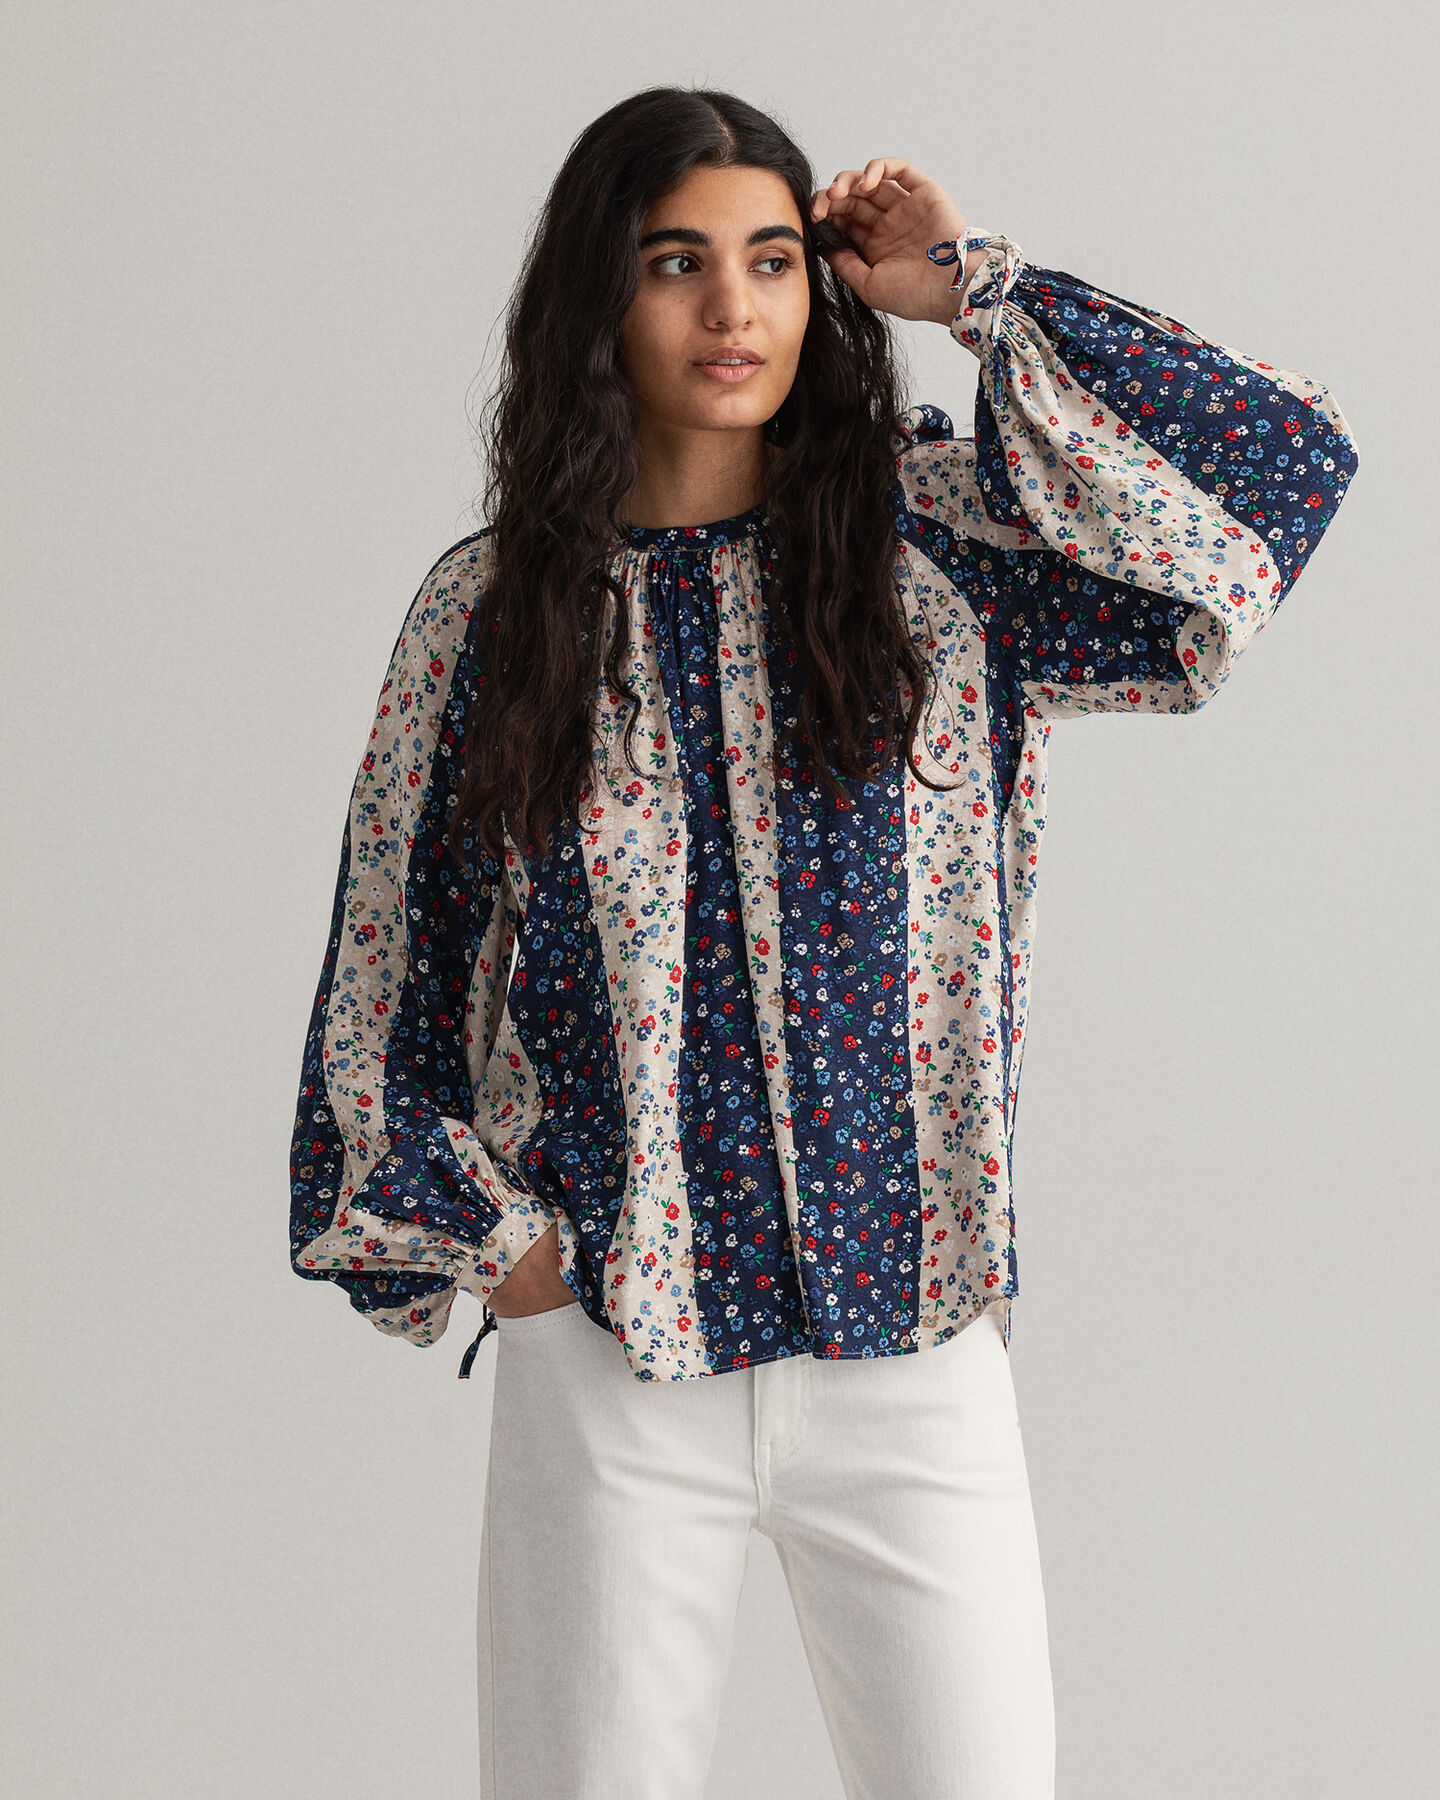 Liberation Flower blus med tryck